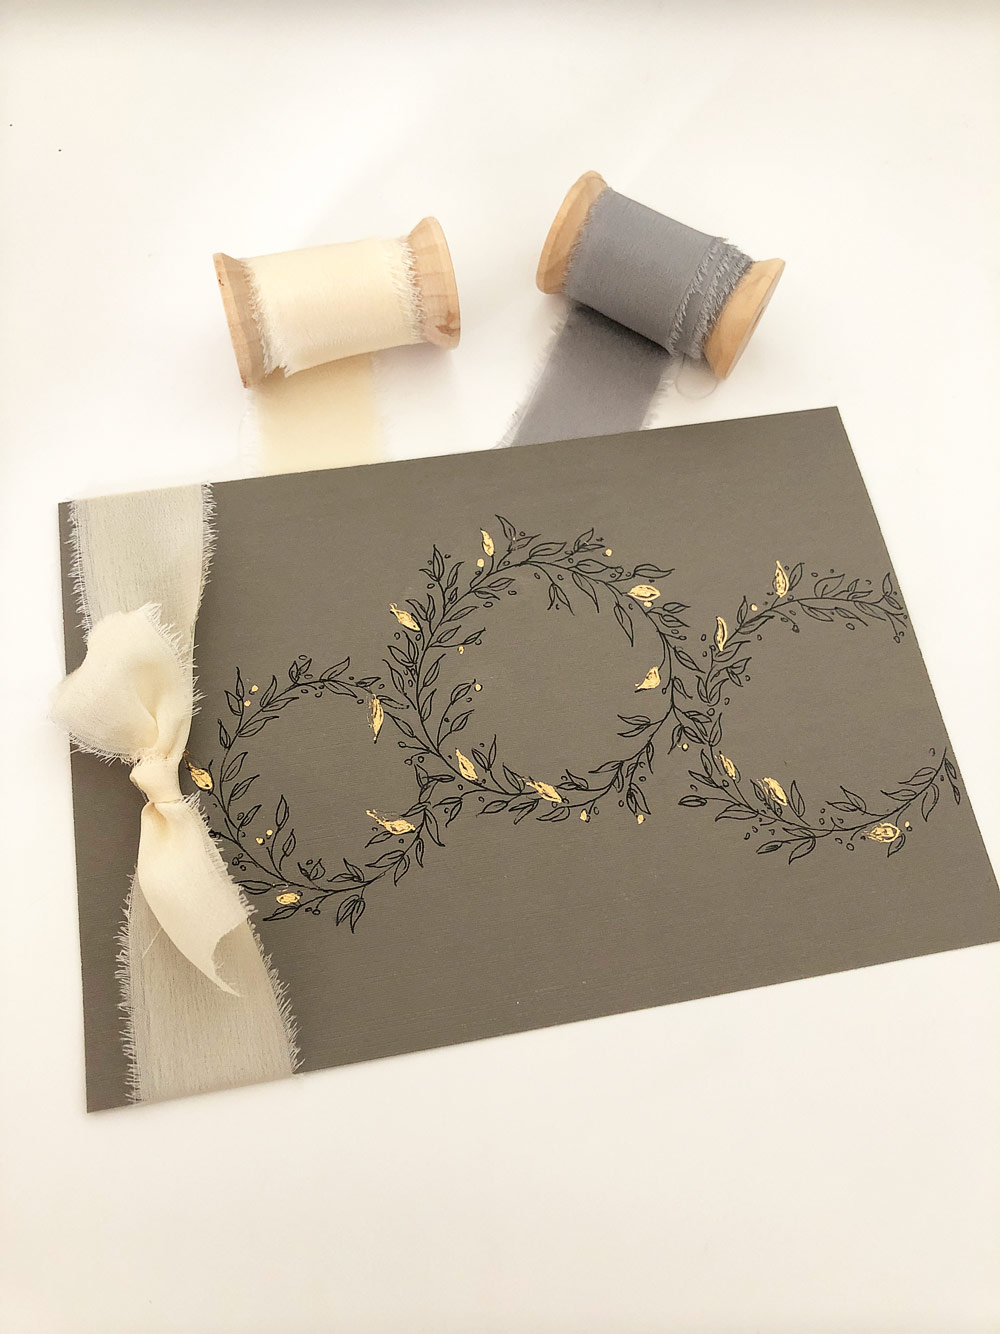 Gold Foiling on Season's Greeting Cards